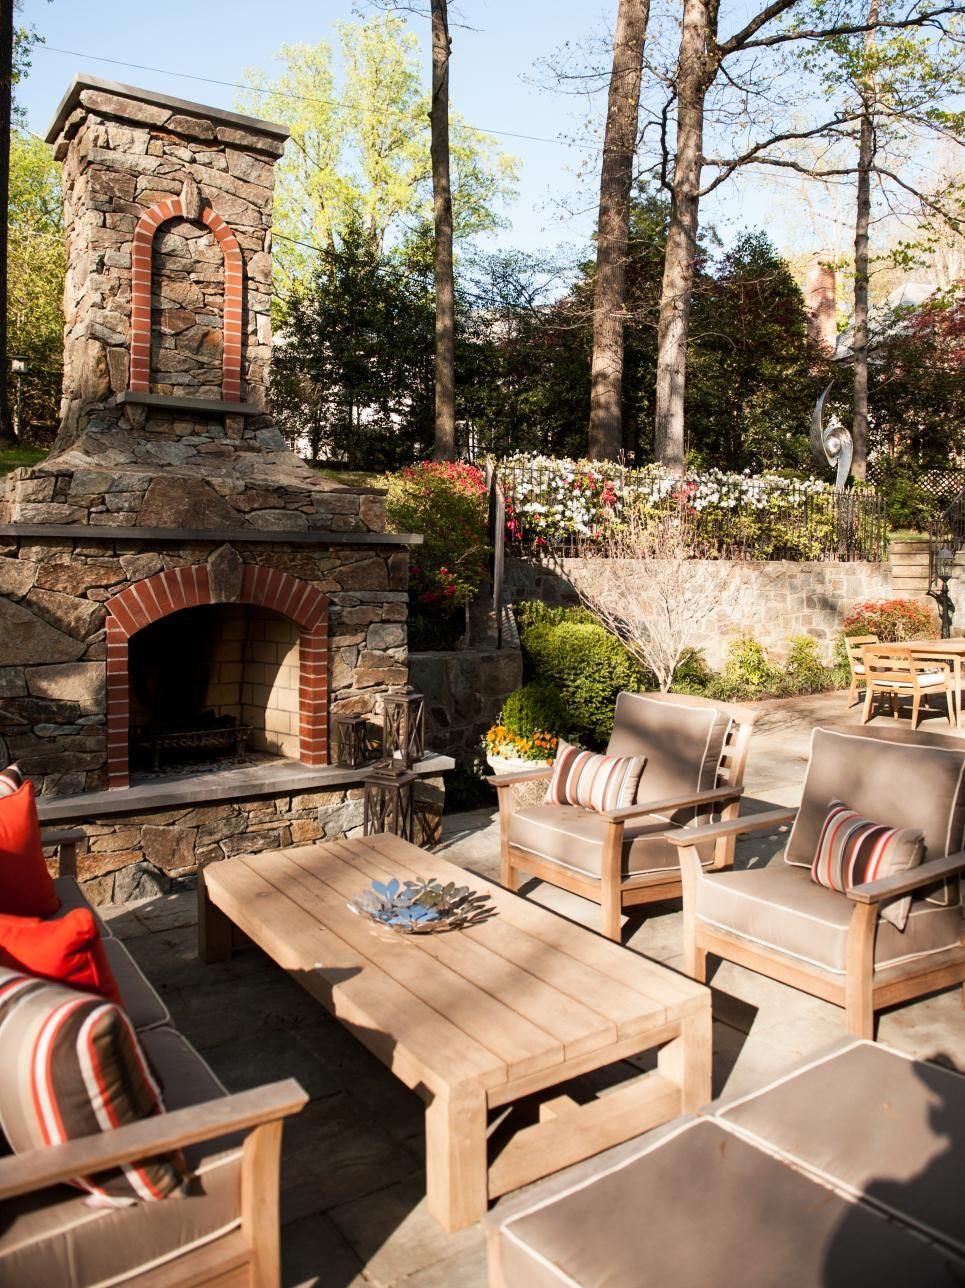 This earthy outdoor area features a large stone fireplace flower